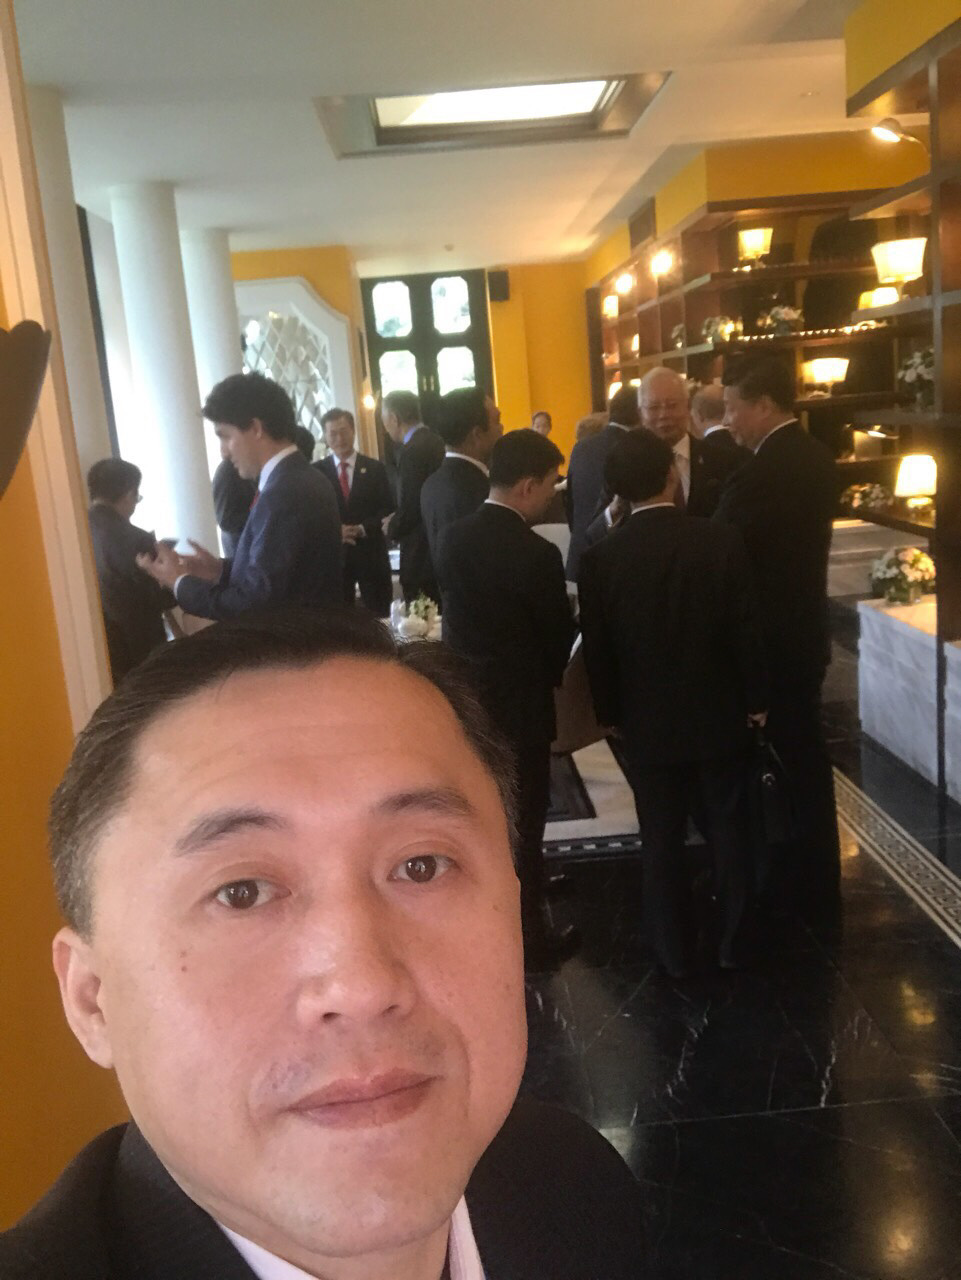 LUNCH WITH LEADERS. SAP Bong Go takes a selfie with Chinese President Xi Jinping, Canadian Prime Minister Justin Trudeau, and Malaysian Prime Minister Najib Razak behind him.